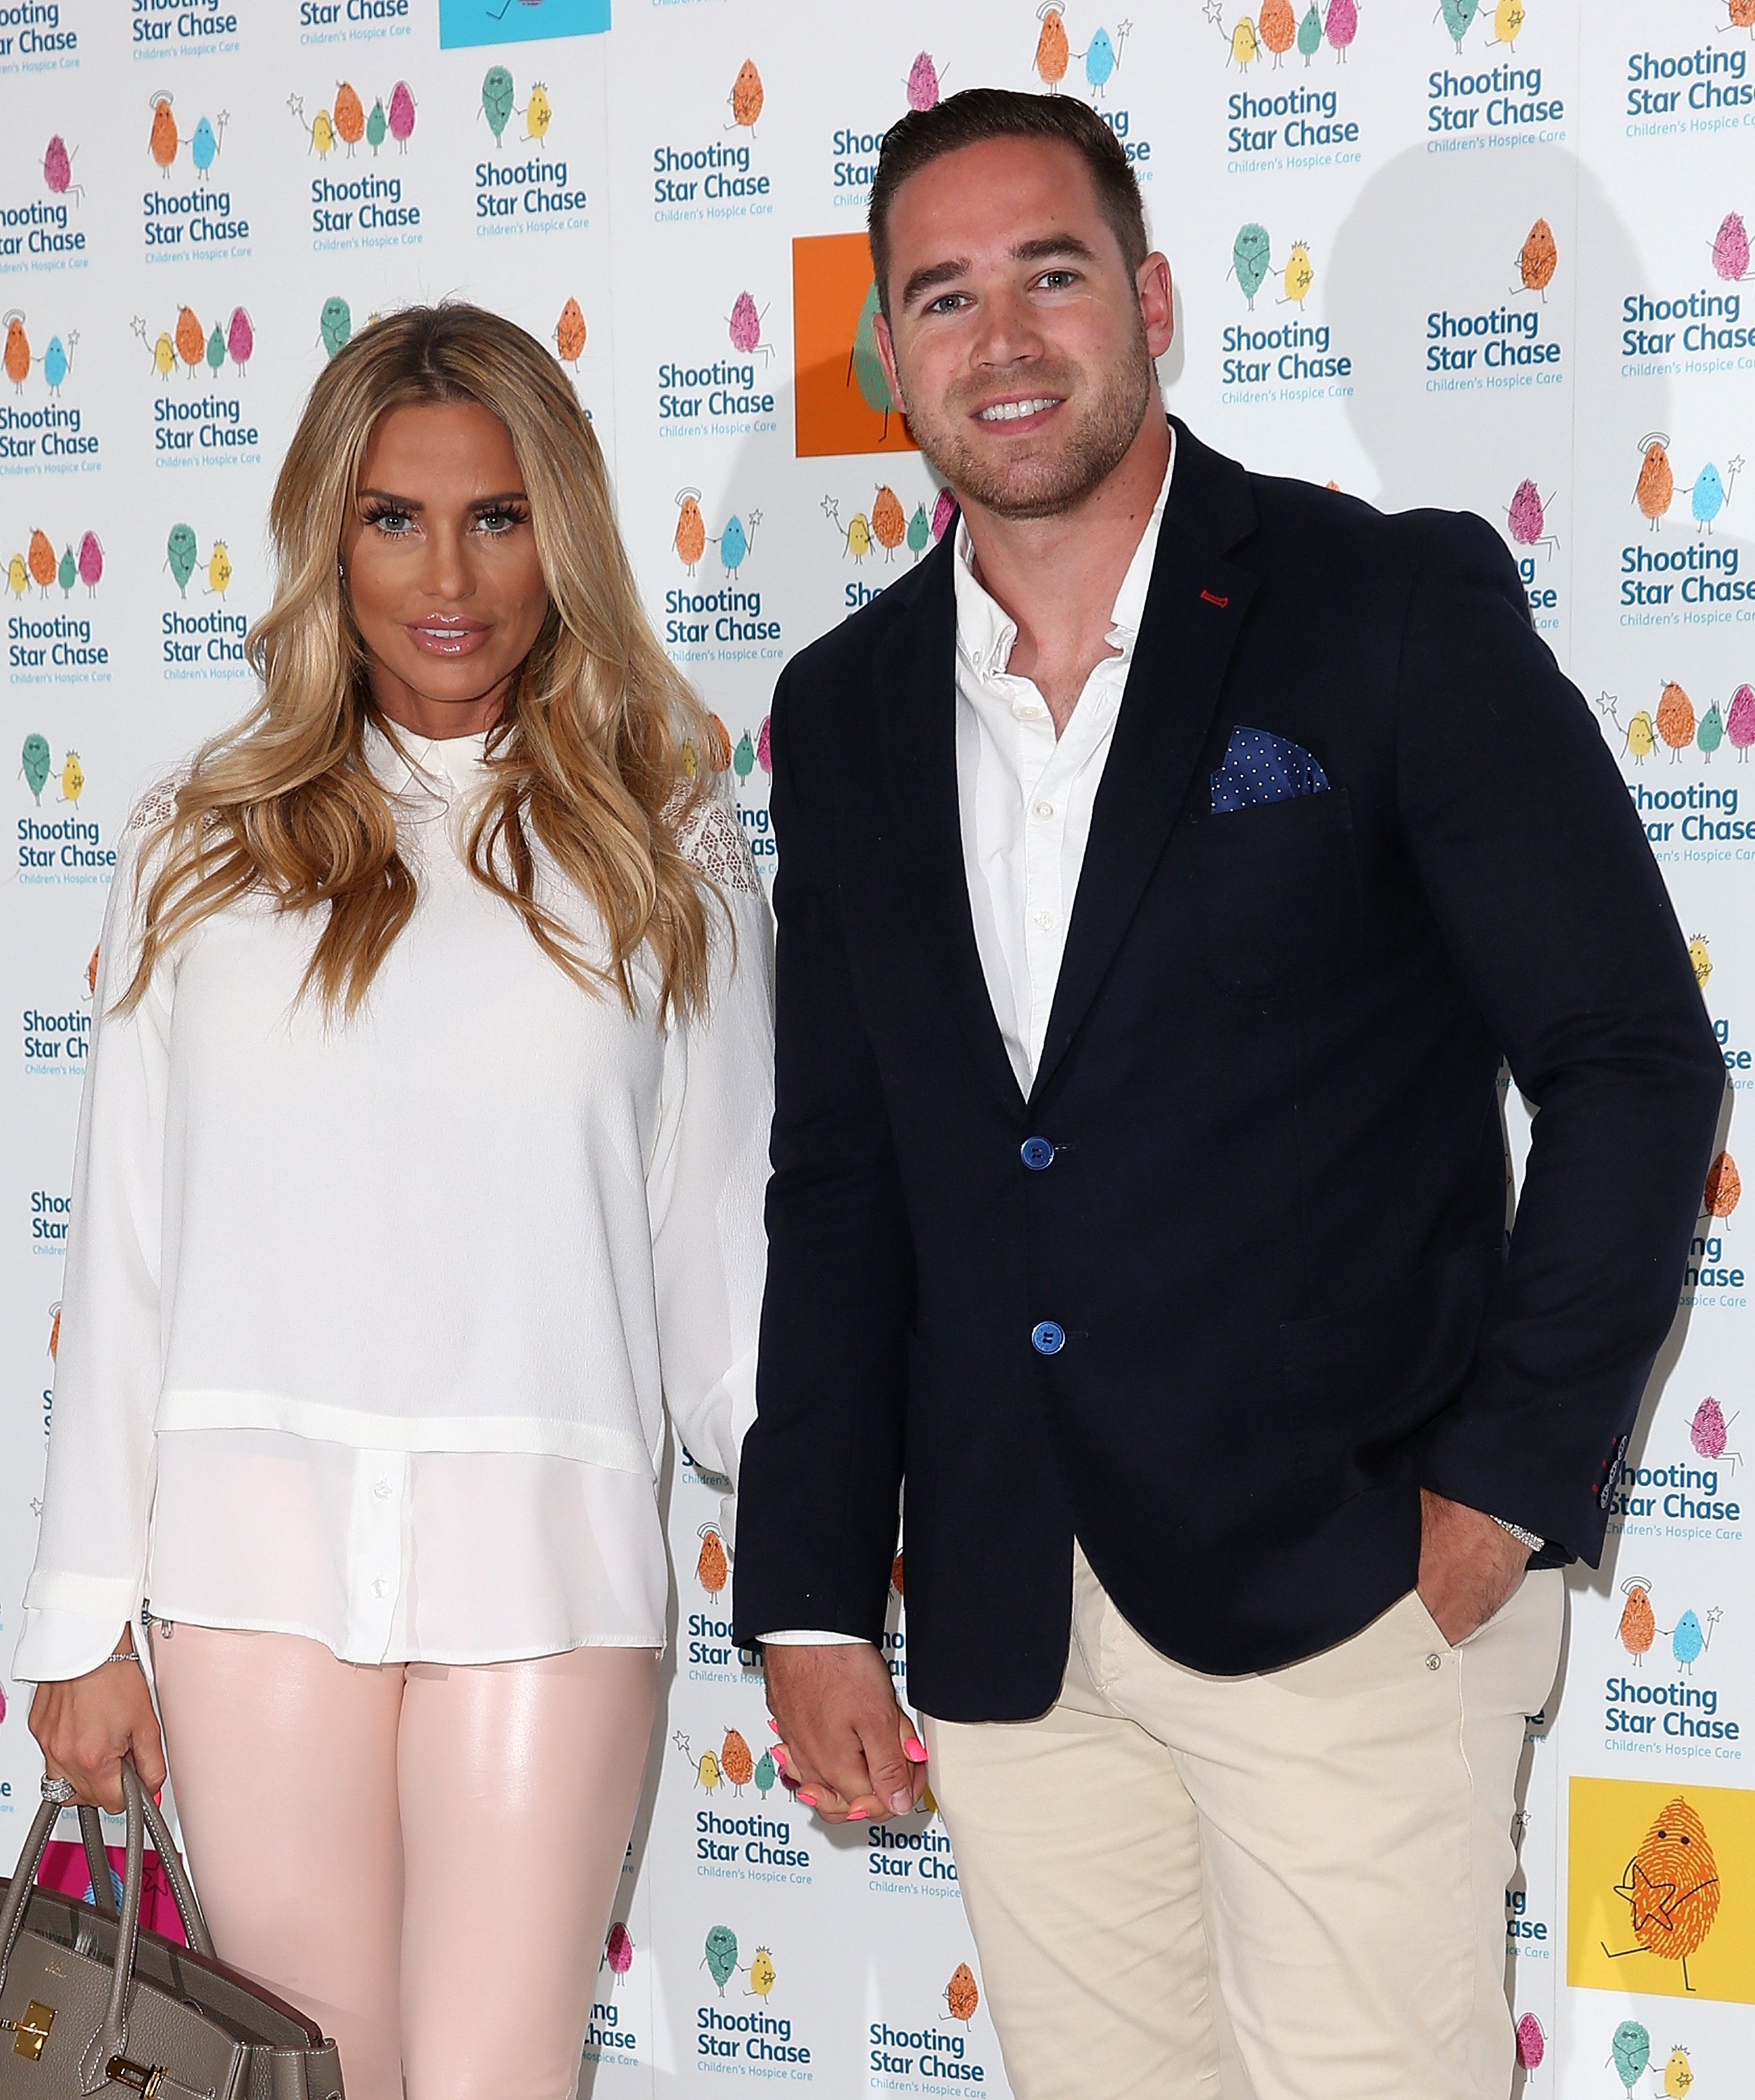 Katie Price and Kieran